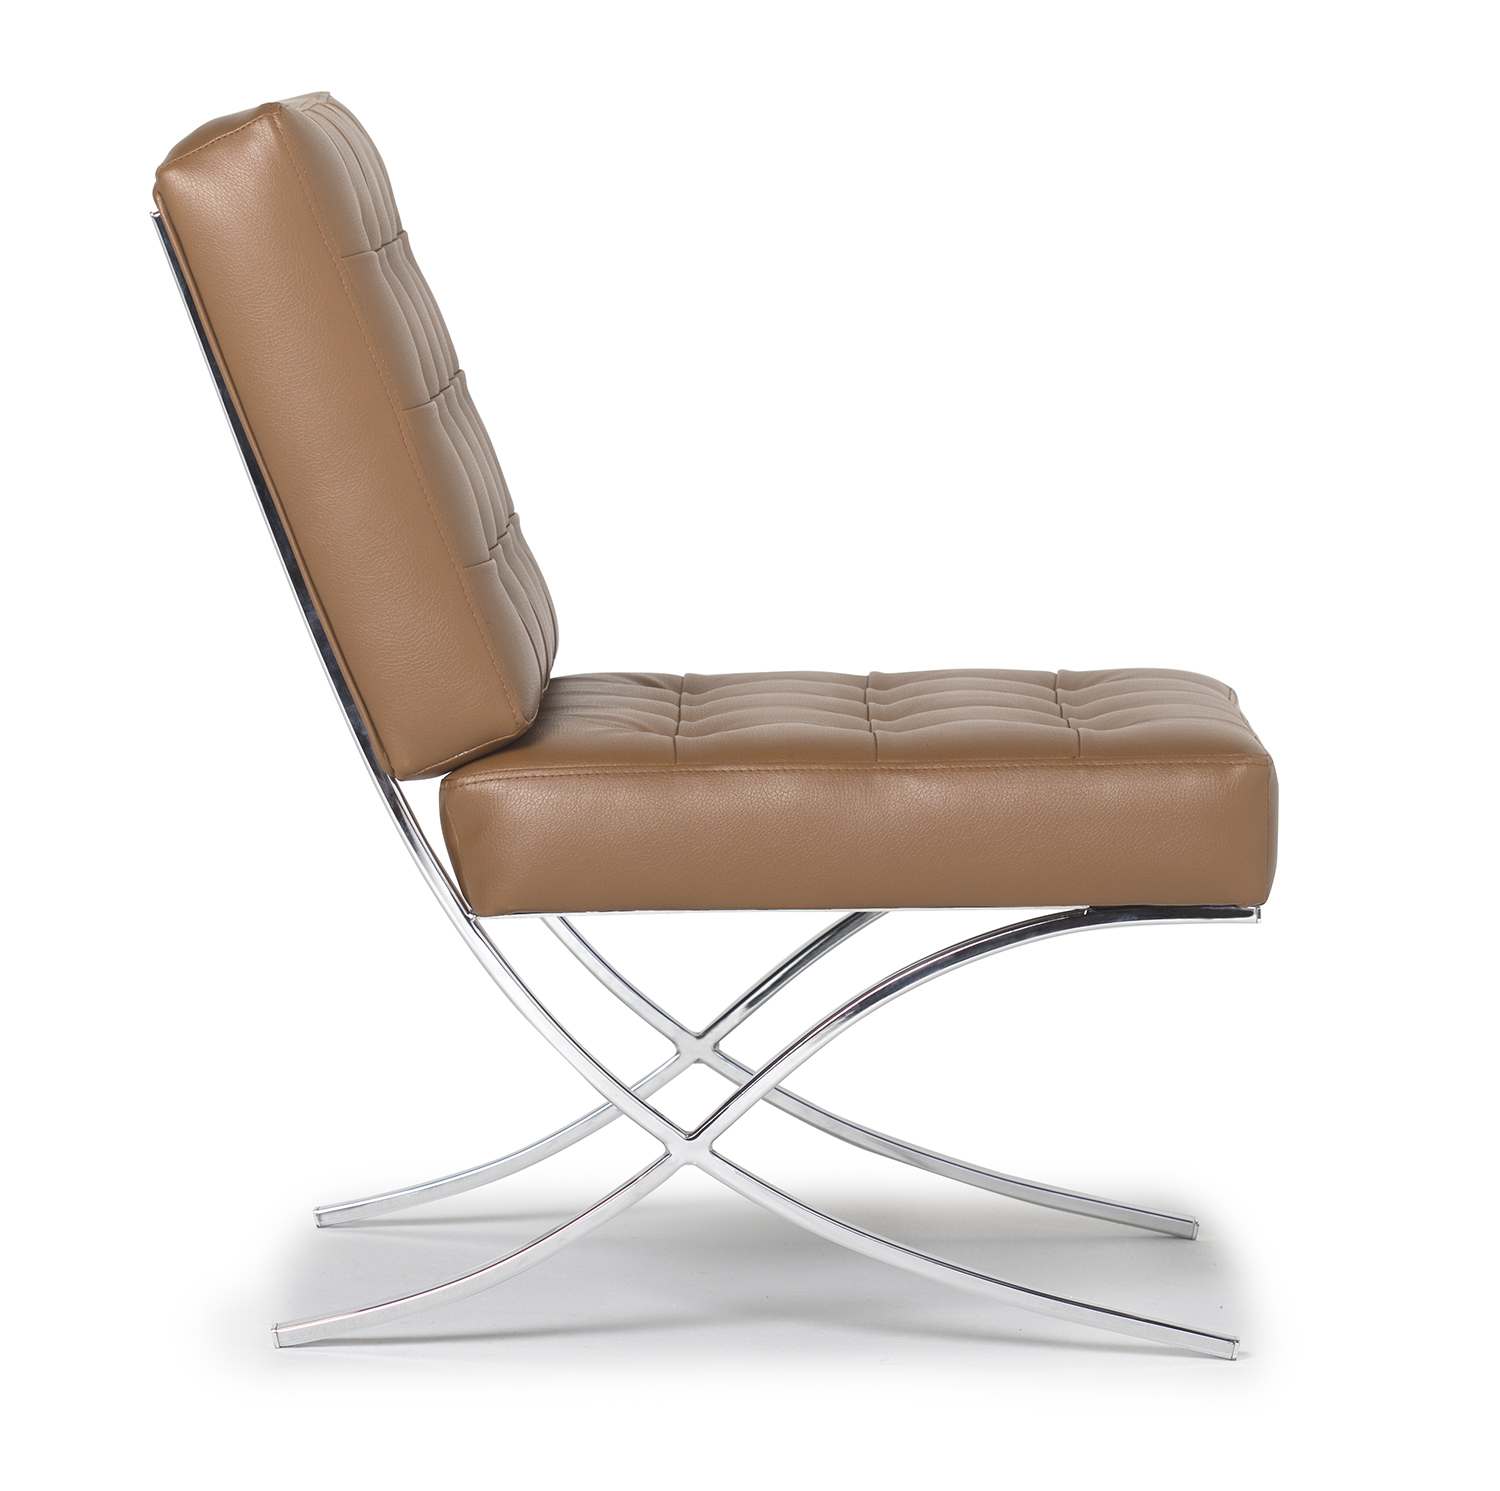 Leather Accent Chairs Metal Legs Caramel.Atrium Modern Bonded Leather Accent Chair In Caramel Brown Chrome